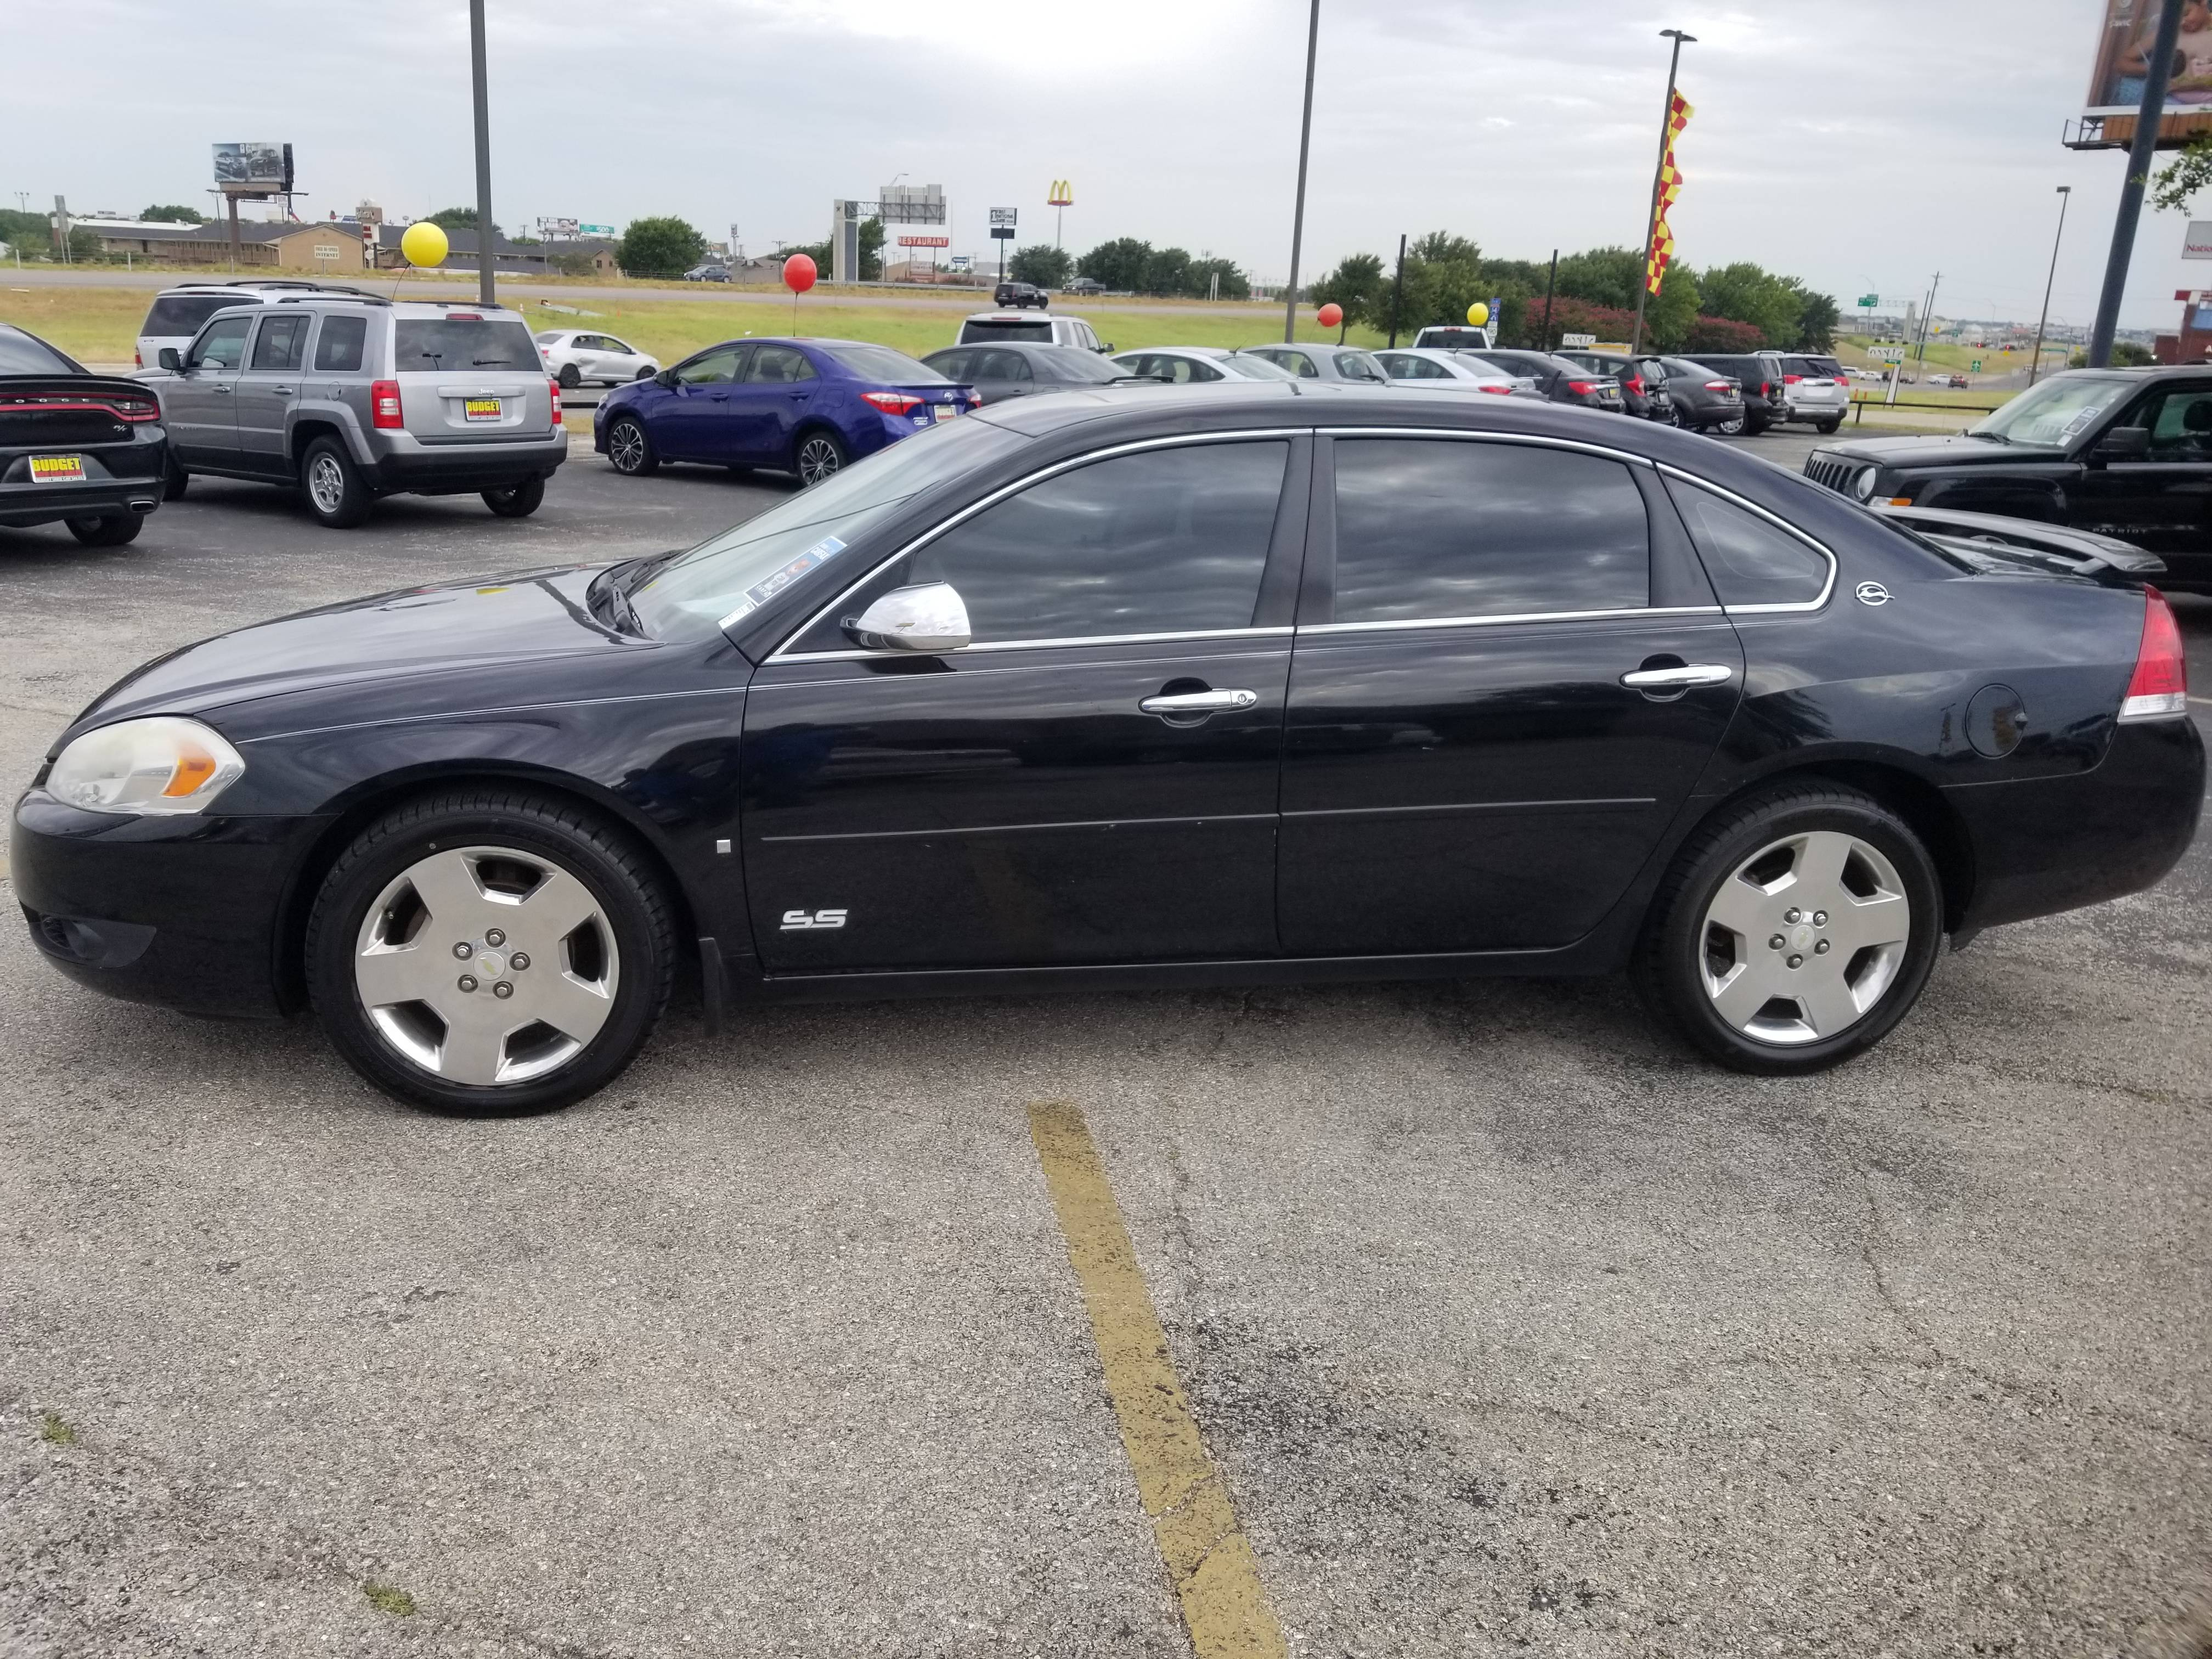 2008 Impala Ss For Sale >> Used 2007 Chevrolet Impala Ss For Sale In Killeen 25015